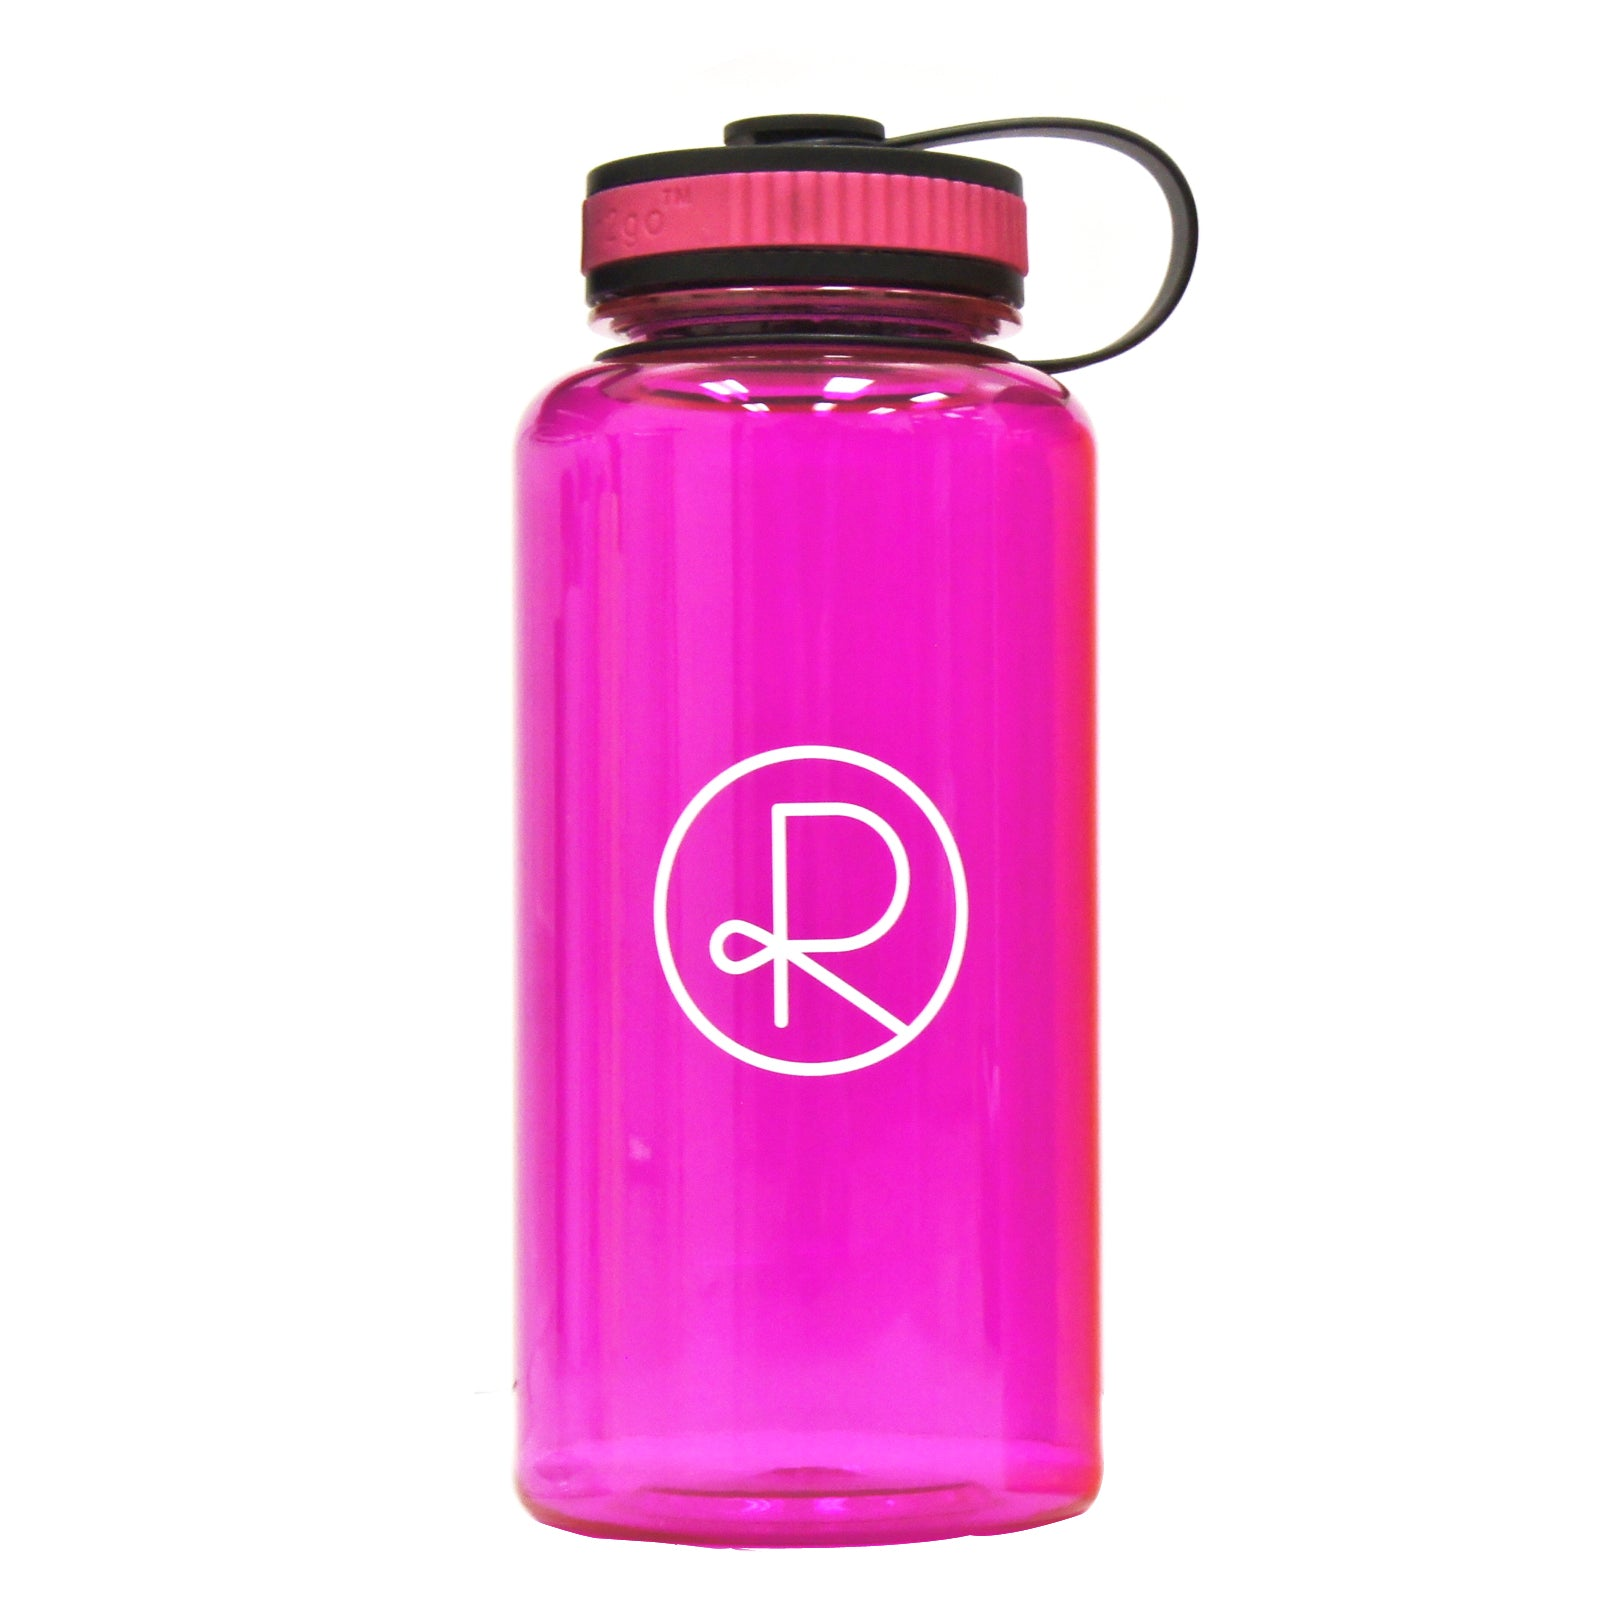 Reborn Coffee h2go Wide Water Bottle. 34 oz.Single Wall Tritan Copolyester Bottle with Threaded Lid. Patent Pending for Cold Beverage. color: PINK